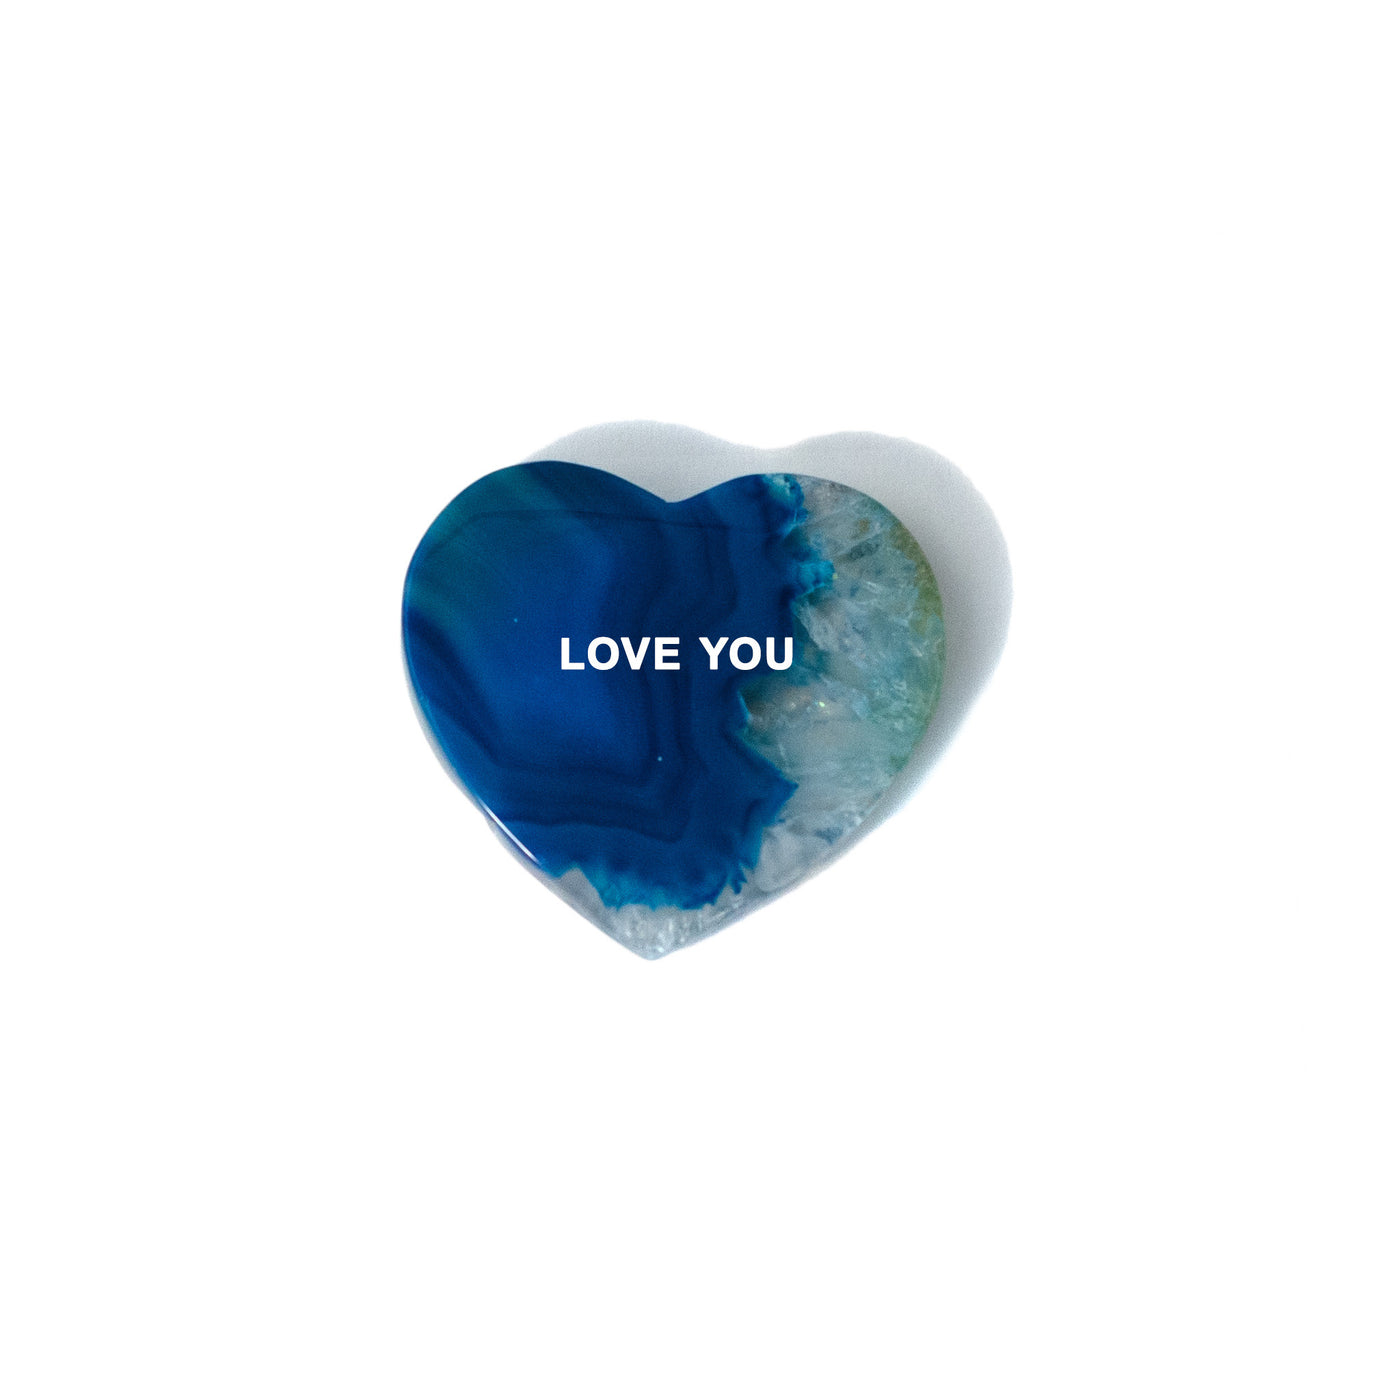 The Healing Heart - Sympathy Crystal - Healing Hearts Journey | Thoughtful Sorry for Your Loss Gifts